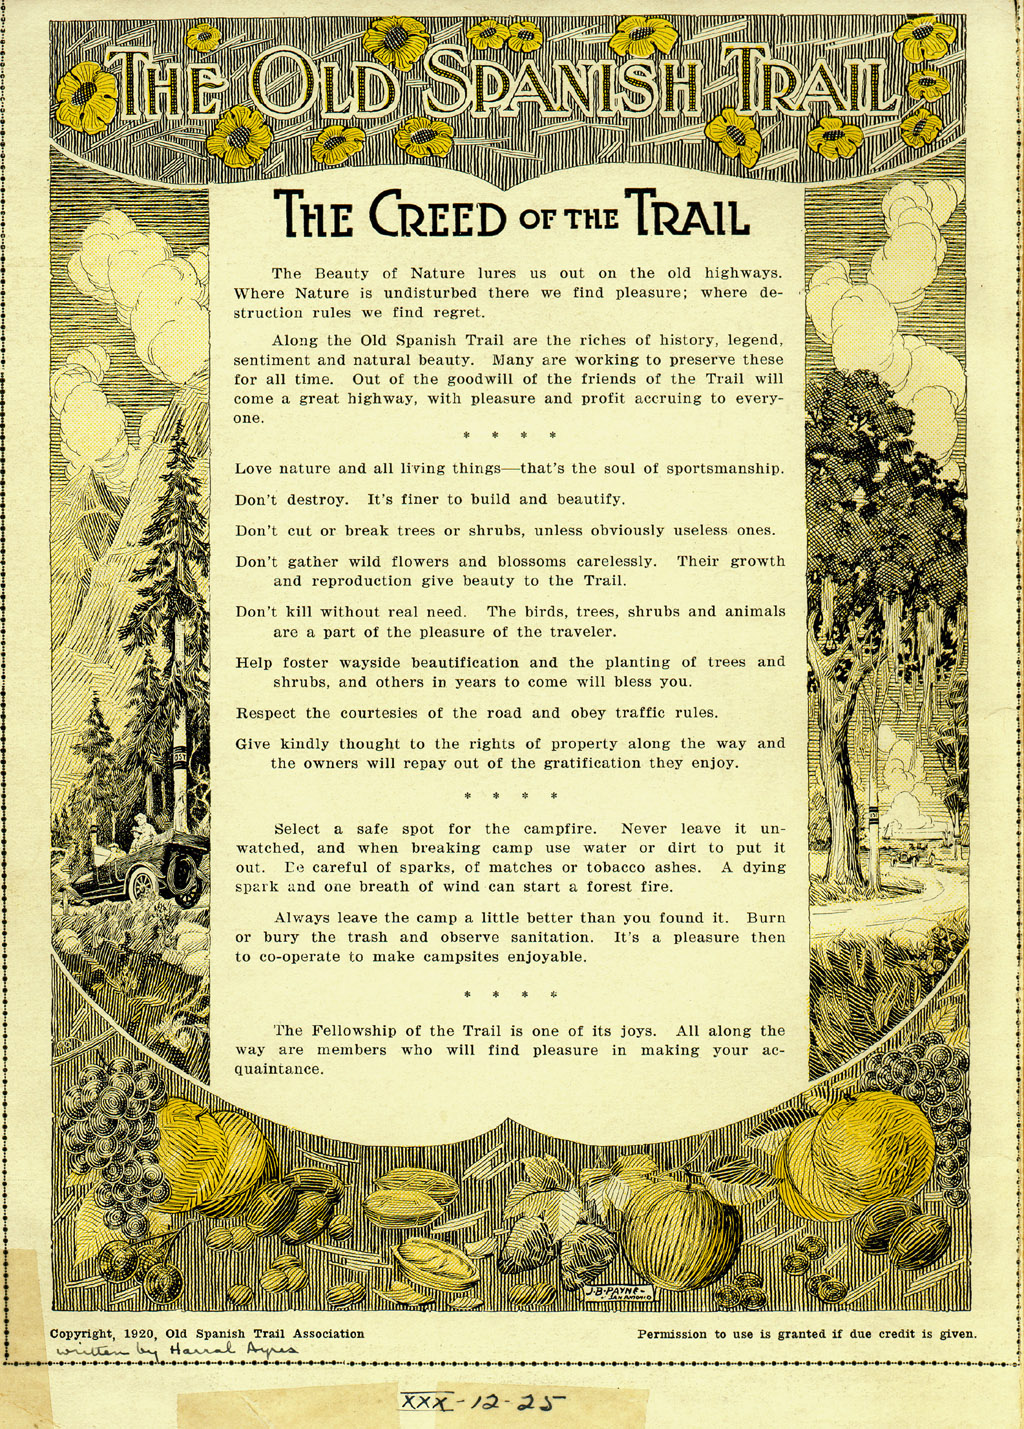 """The Creed of the Trail"" is a plea for renovation and is a strong statement of advocacy for conservation efforts 